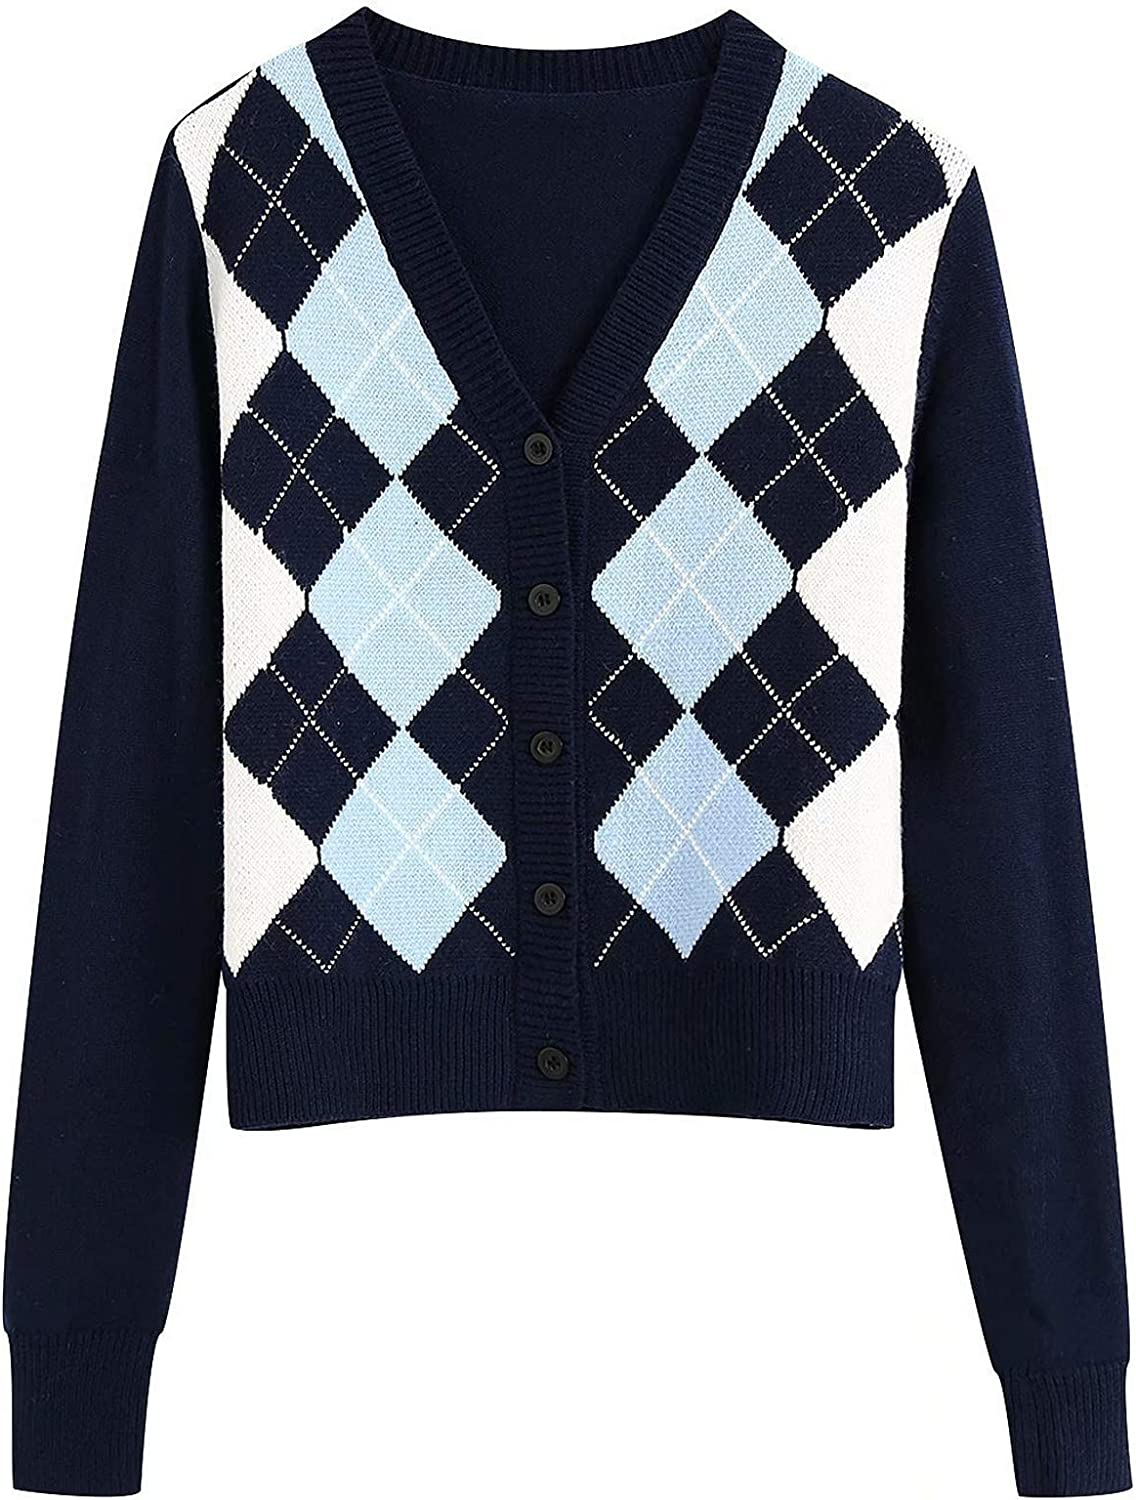 Womens Cardigan Sweater Argyle Long Sleeve V Neck Knit Button Up Sweaters Tops Shirts